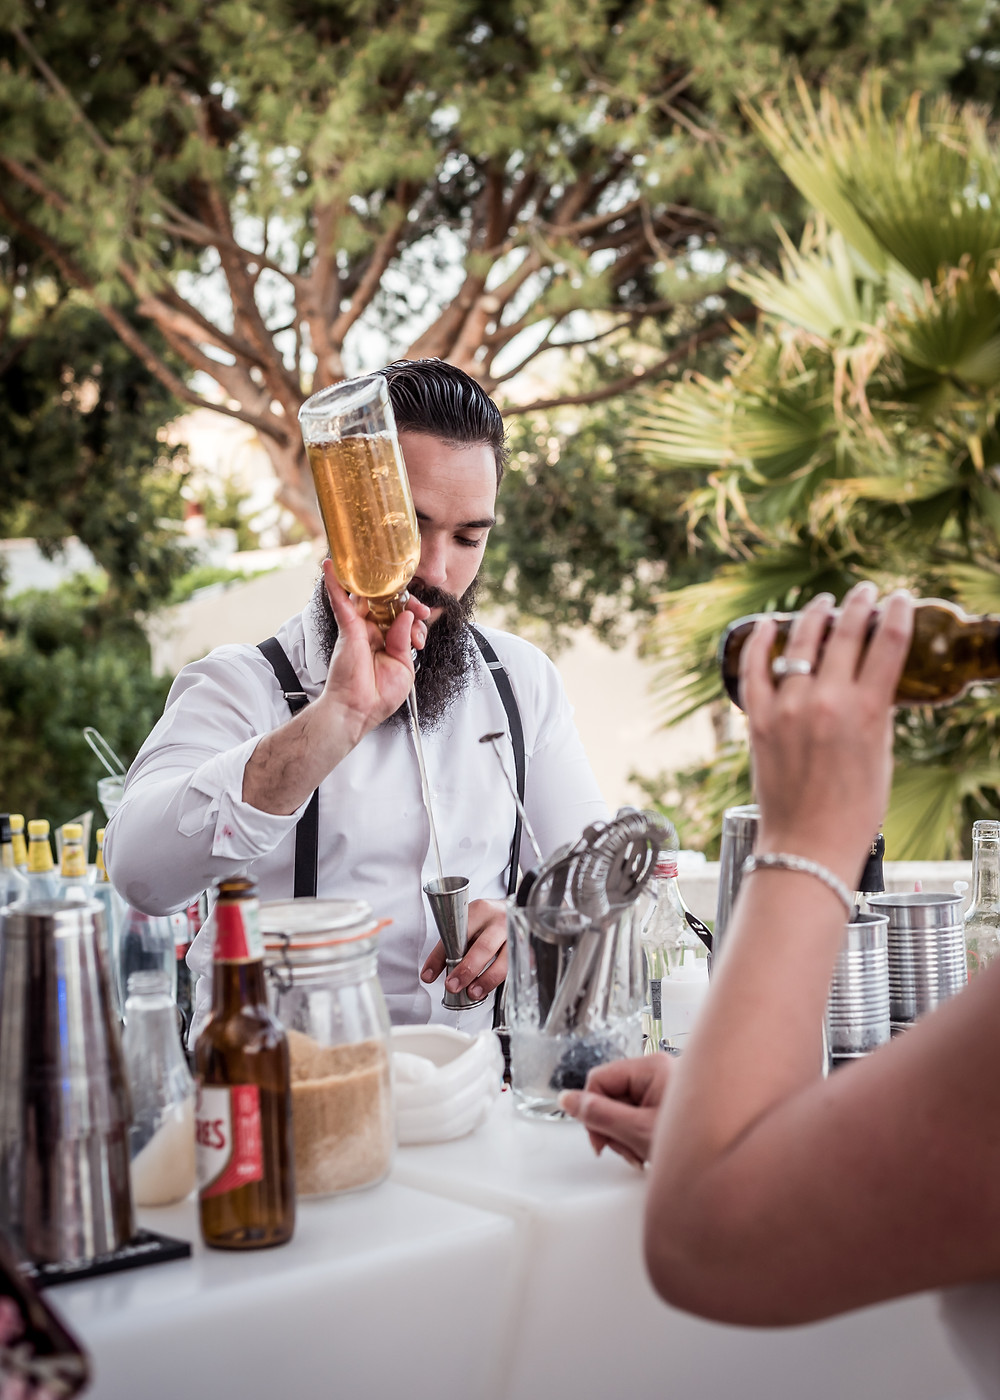 Hire a Bartending Service for your wedding, private party or event. Signature cocktails for your special day